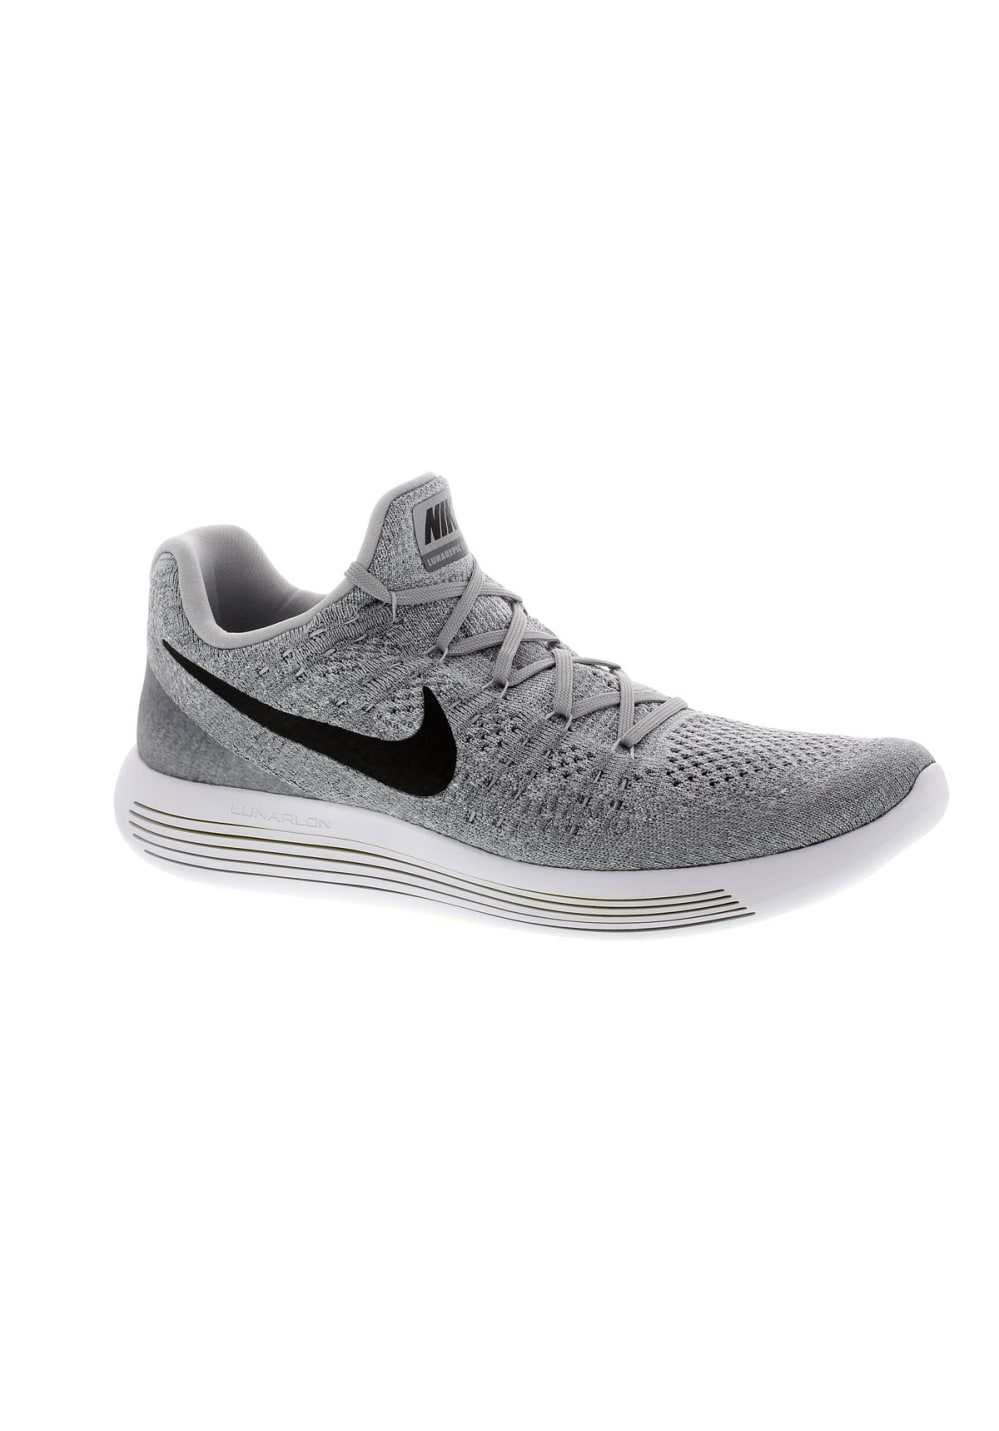 new arrival 997c1 447cd Nike Lunarepic Low Flyknit 2 - Running shoes for Men - Grey